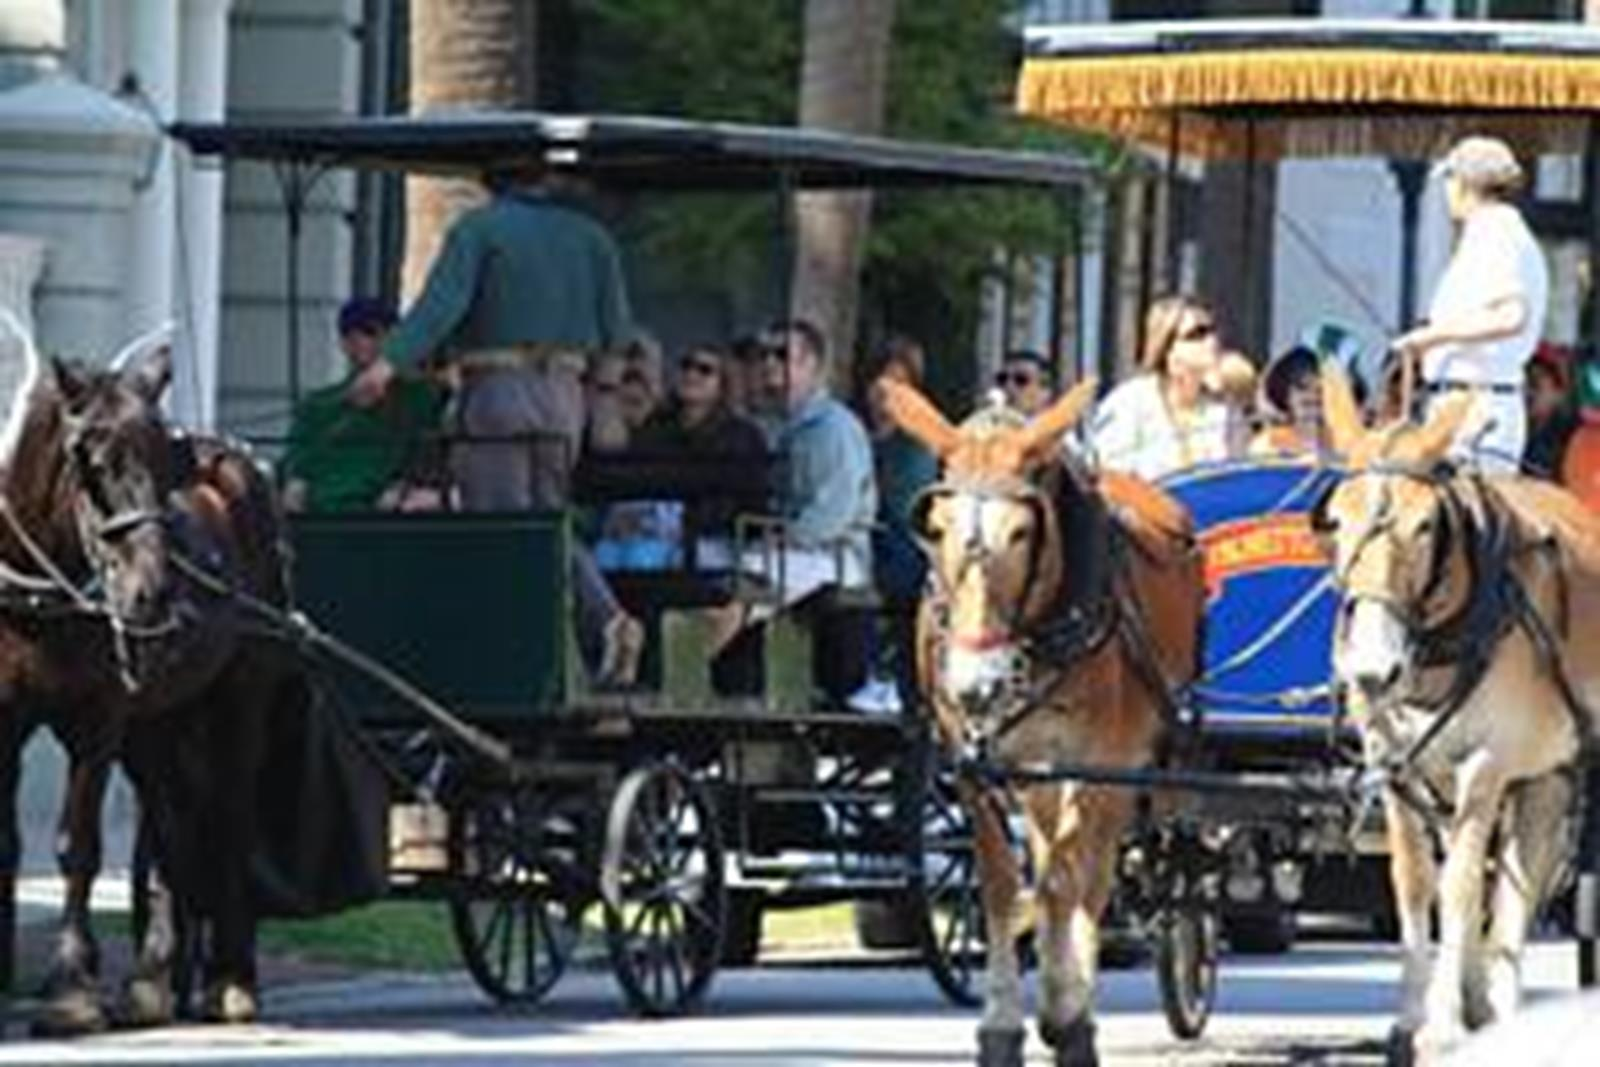 Charleston Carriage tours